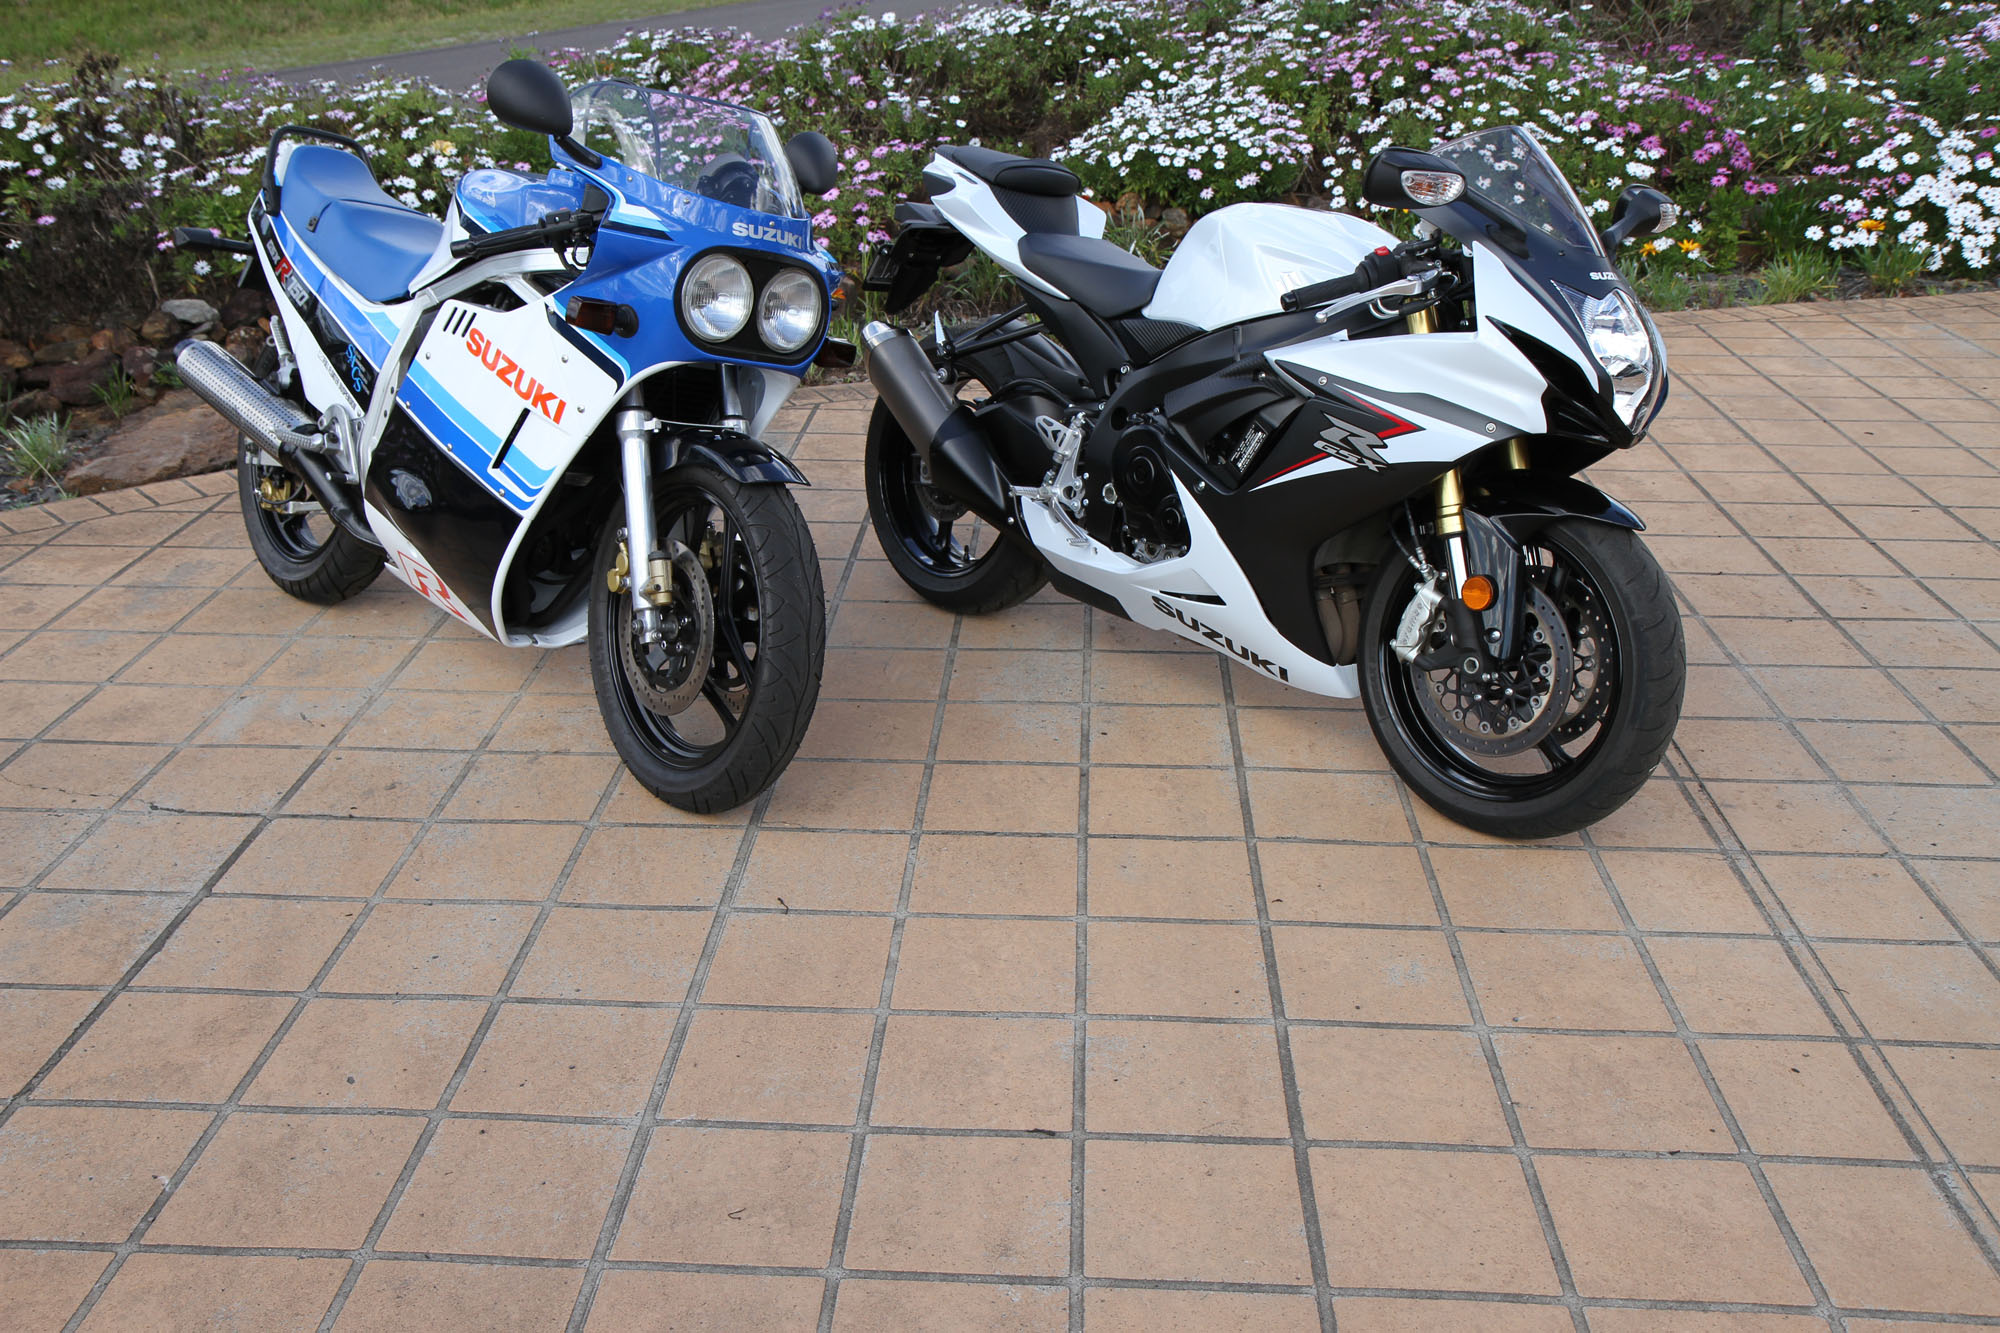 Astonishing Review Suzuki Gsx R750 Old Vs New Bike Review Andrewgaddart Wooden Chair Designs For Living Room Andrewgaddartcom